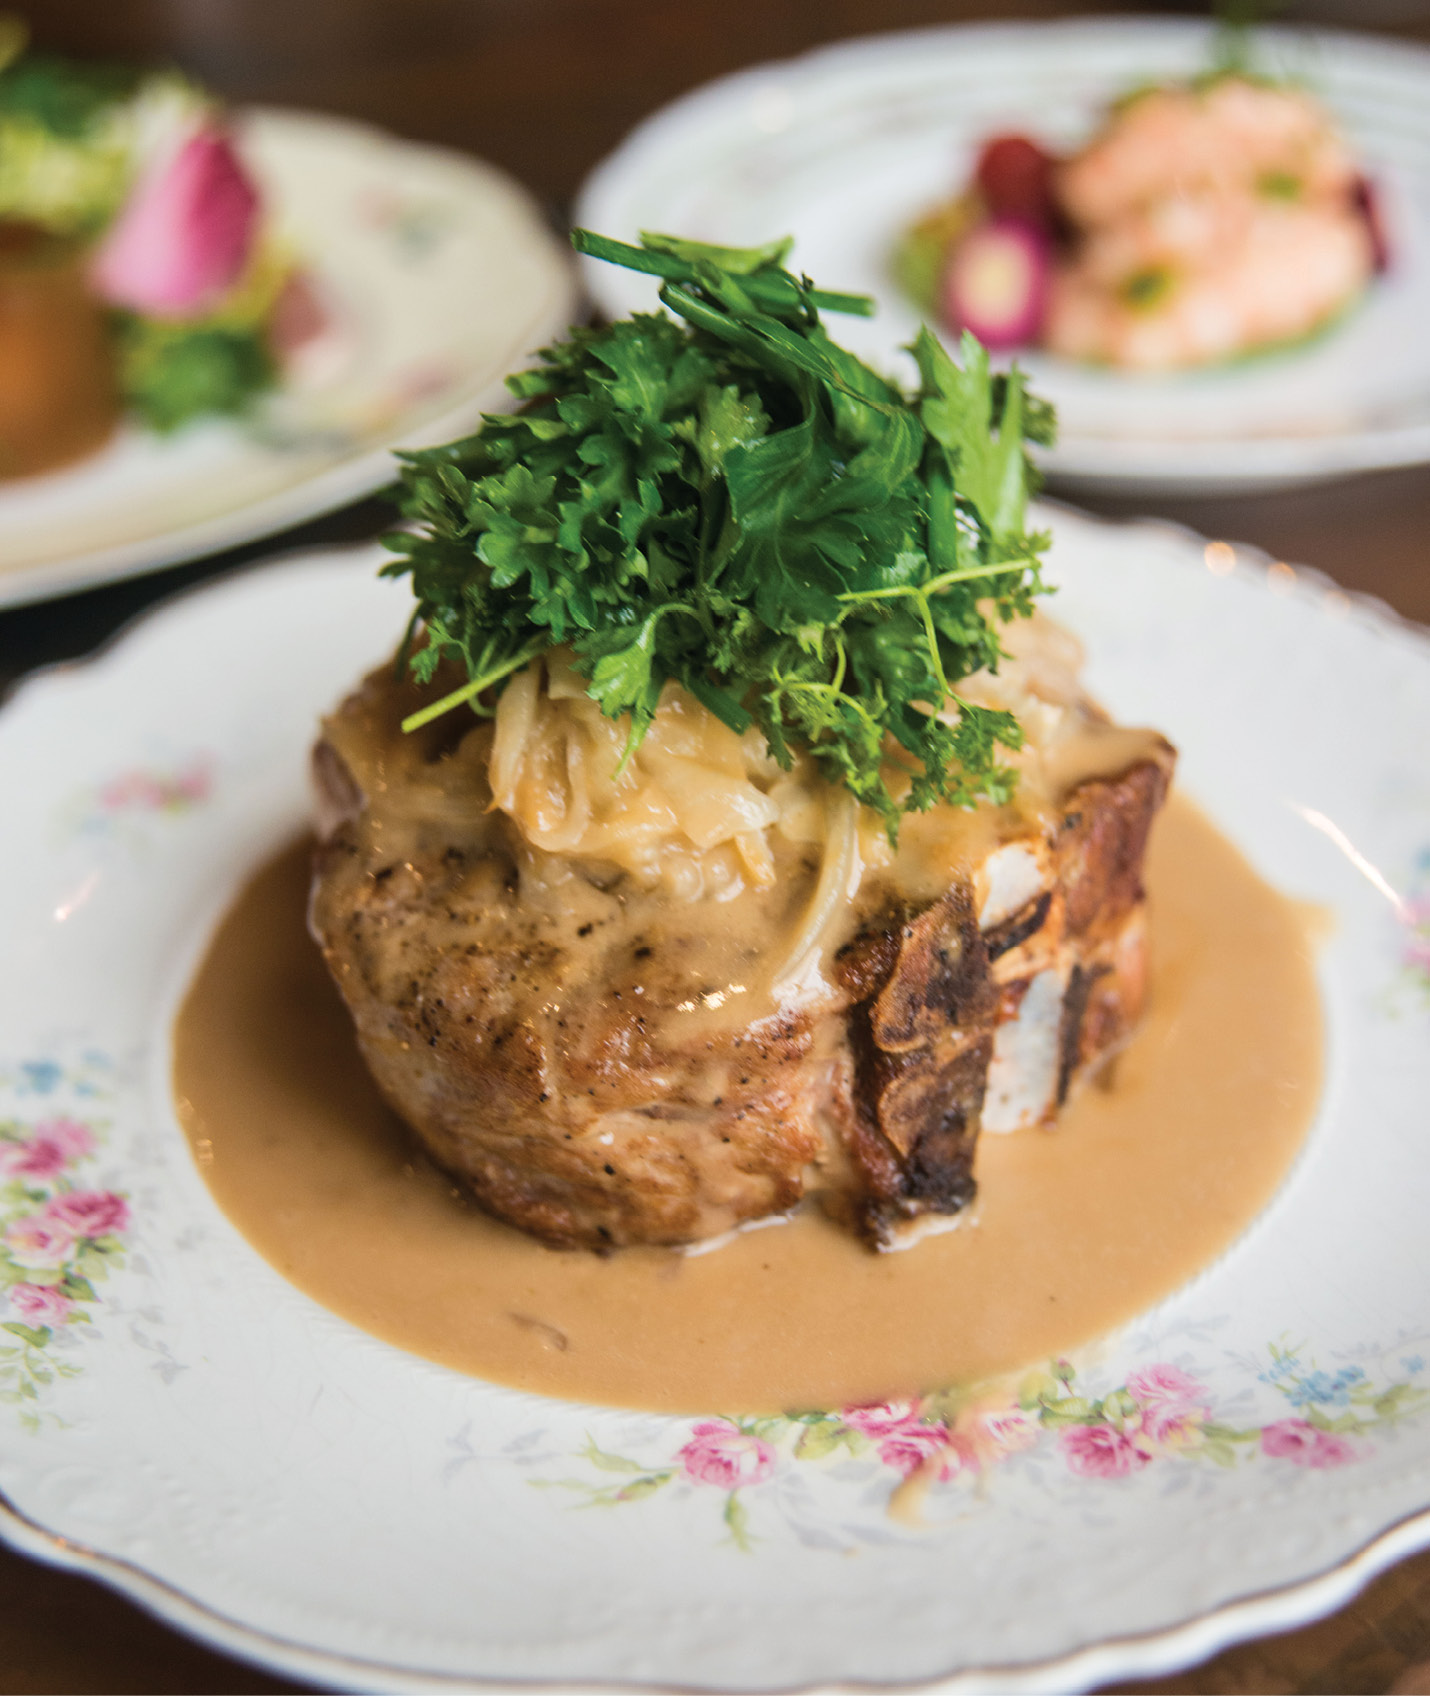 Some Chops: Bathed in a classic French mustard sauce, the grilled pork porterhouse gets dressed with melted onions and a leafy herb salad.